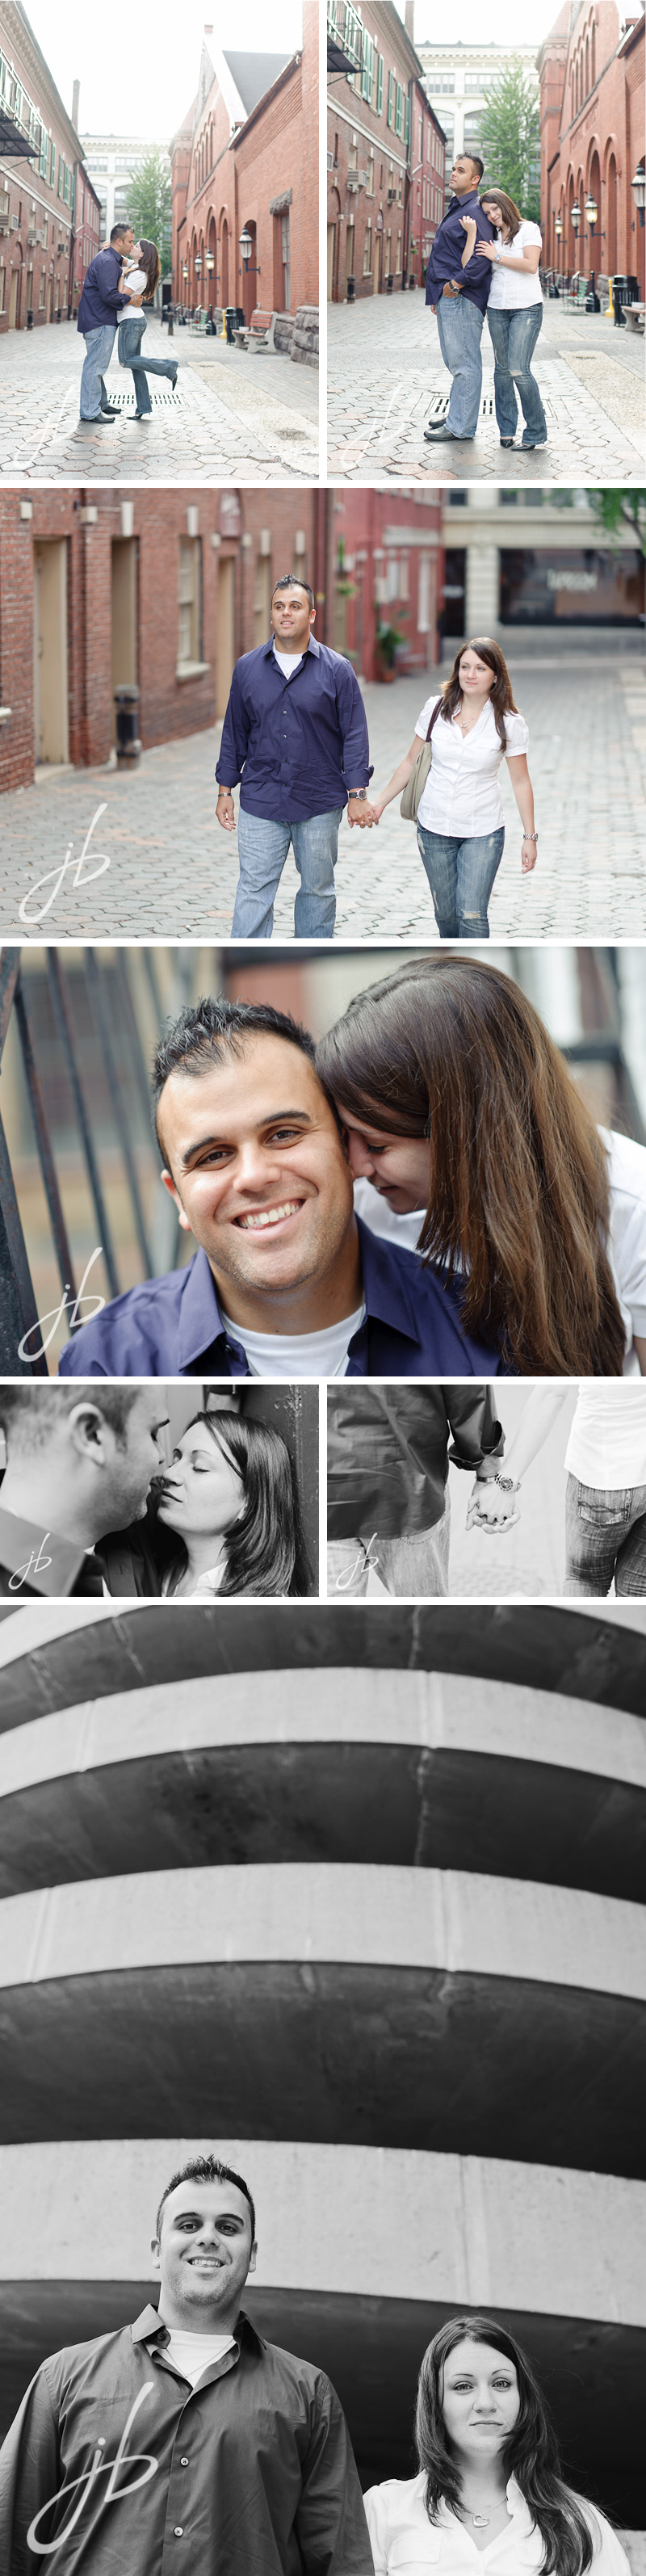 Lancaster Engagement photography by Jeremy Bischoff Photography 001